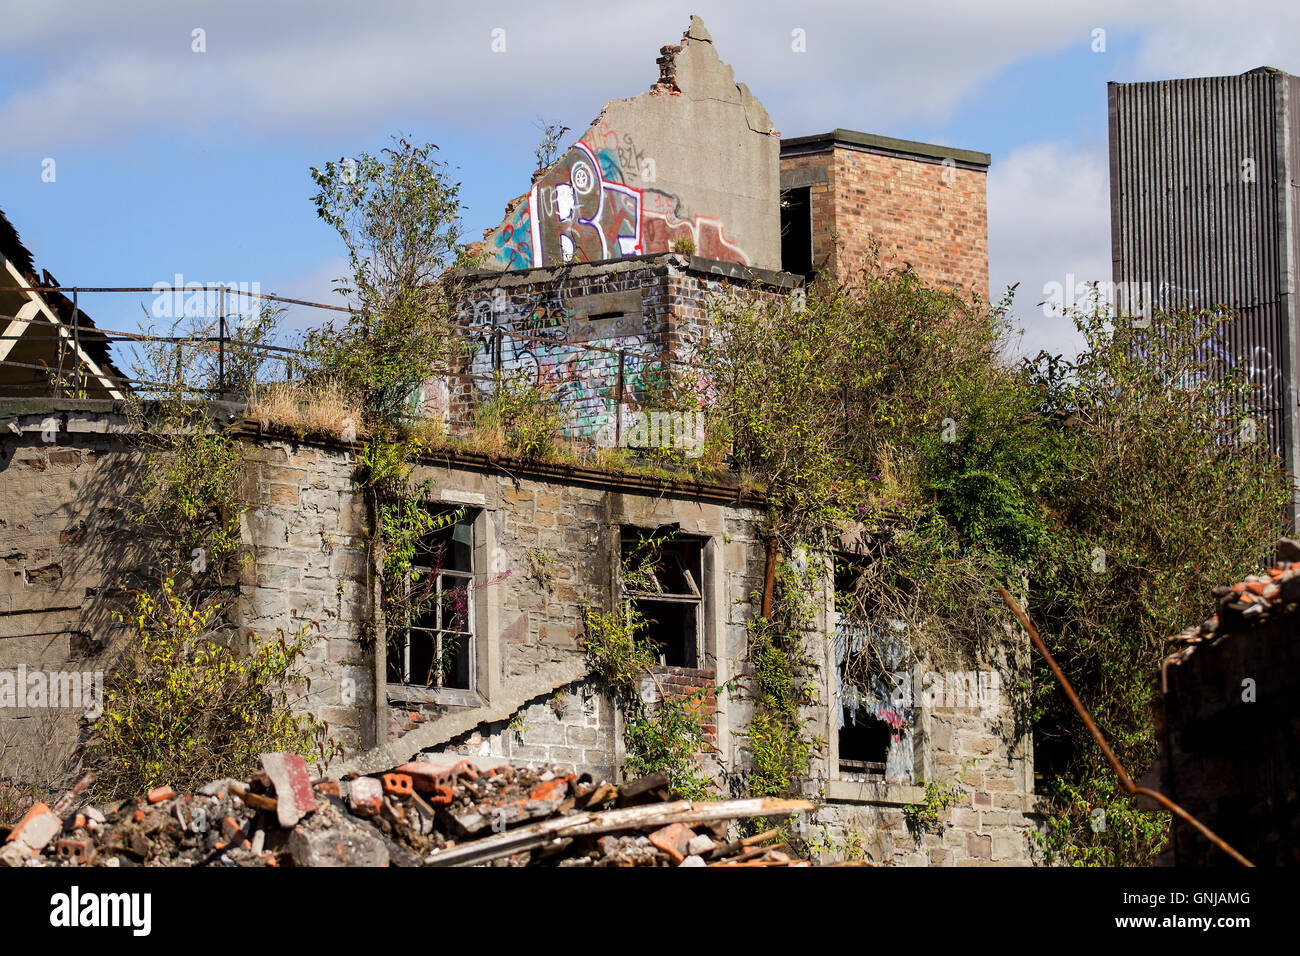 An old derelict 1800`s Queen Victoria Works flax mill building lay in ruins along 203 Brook Street in Dundee, UK - Stock Image